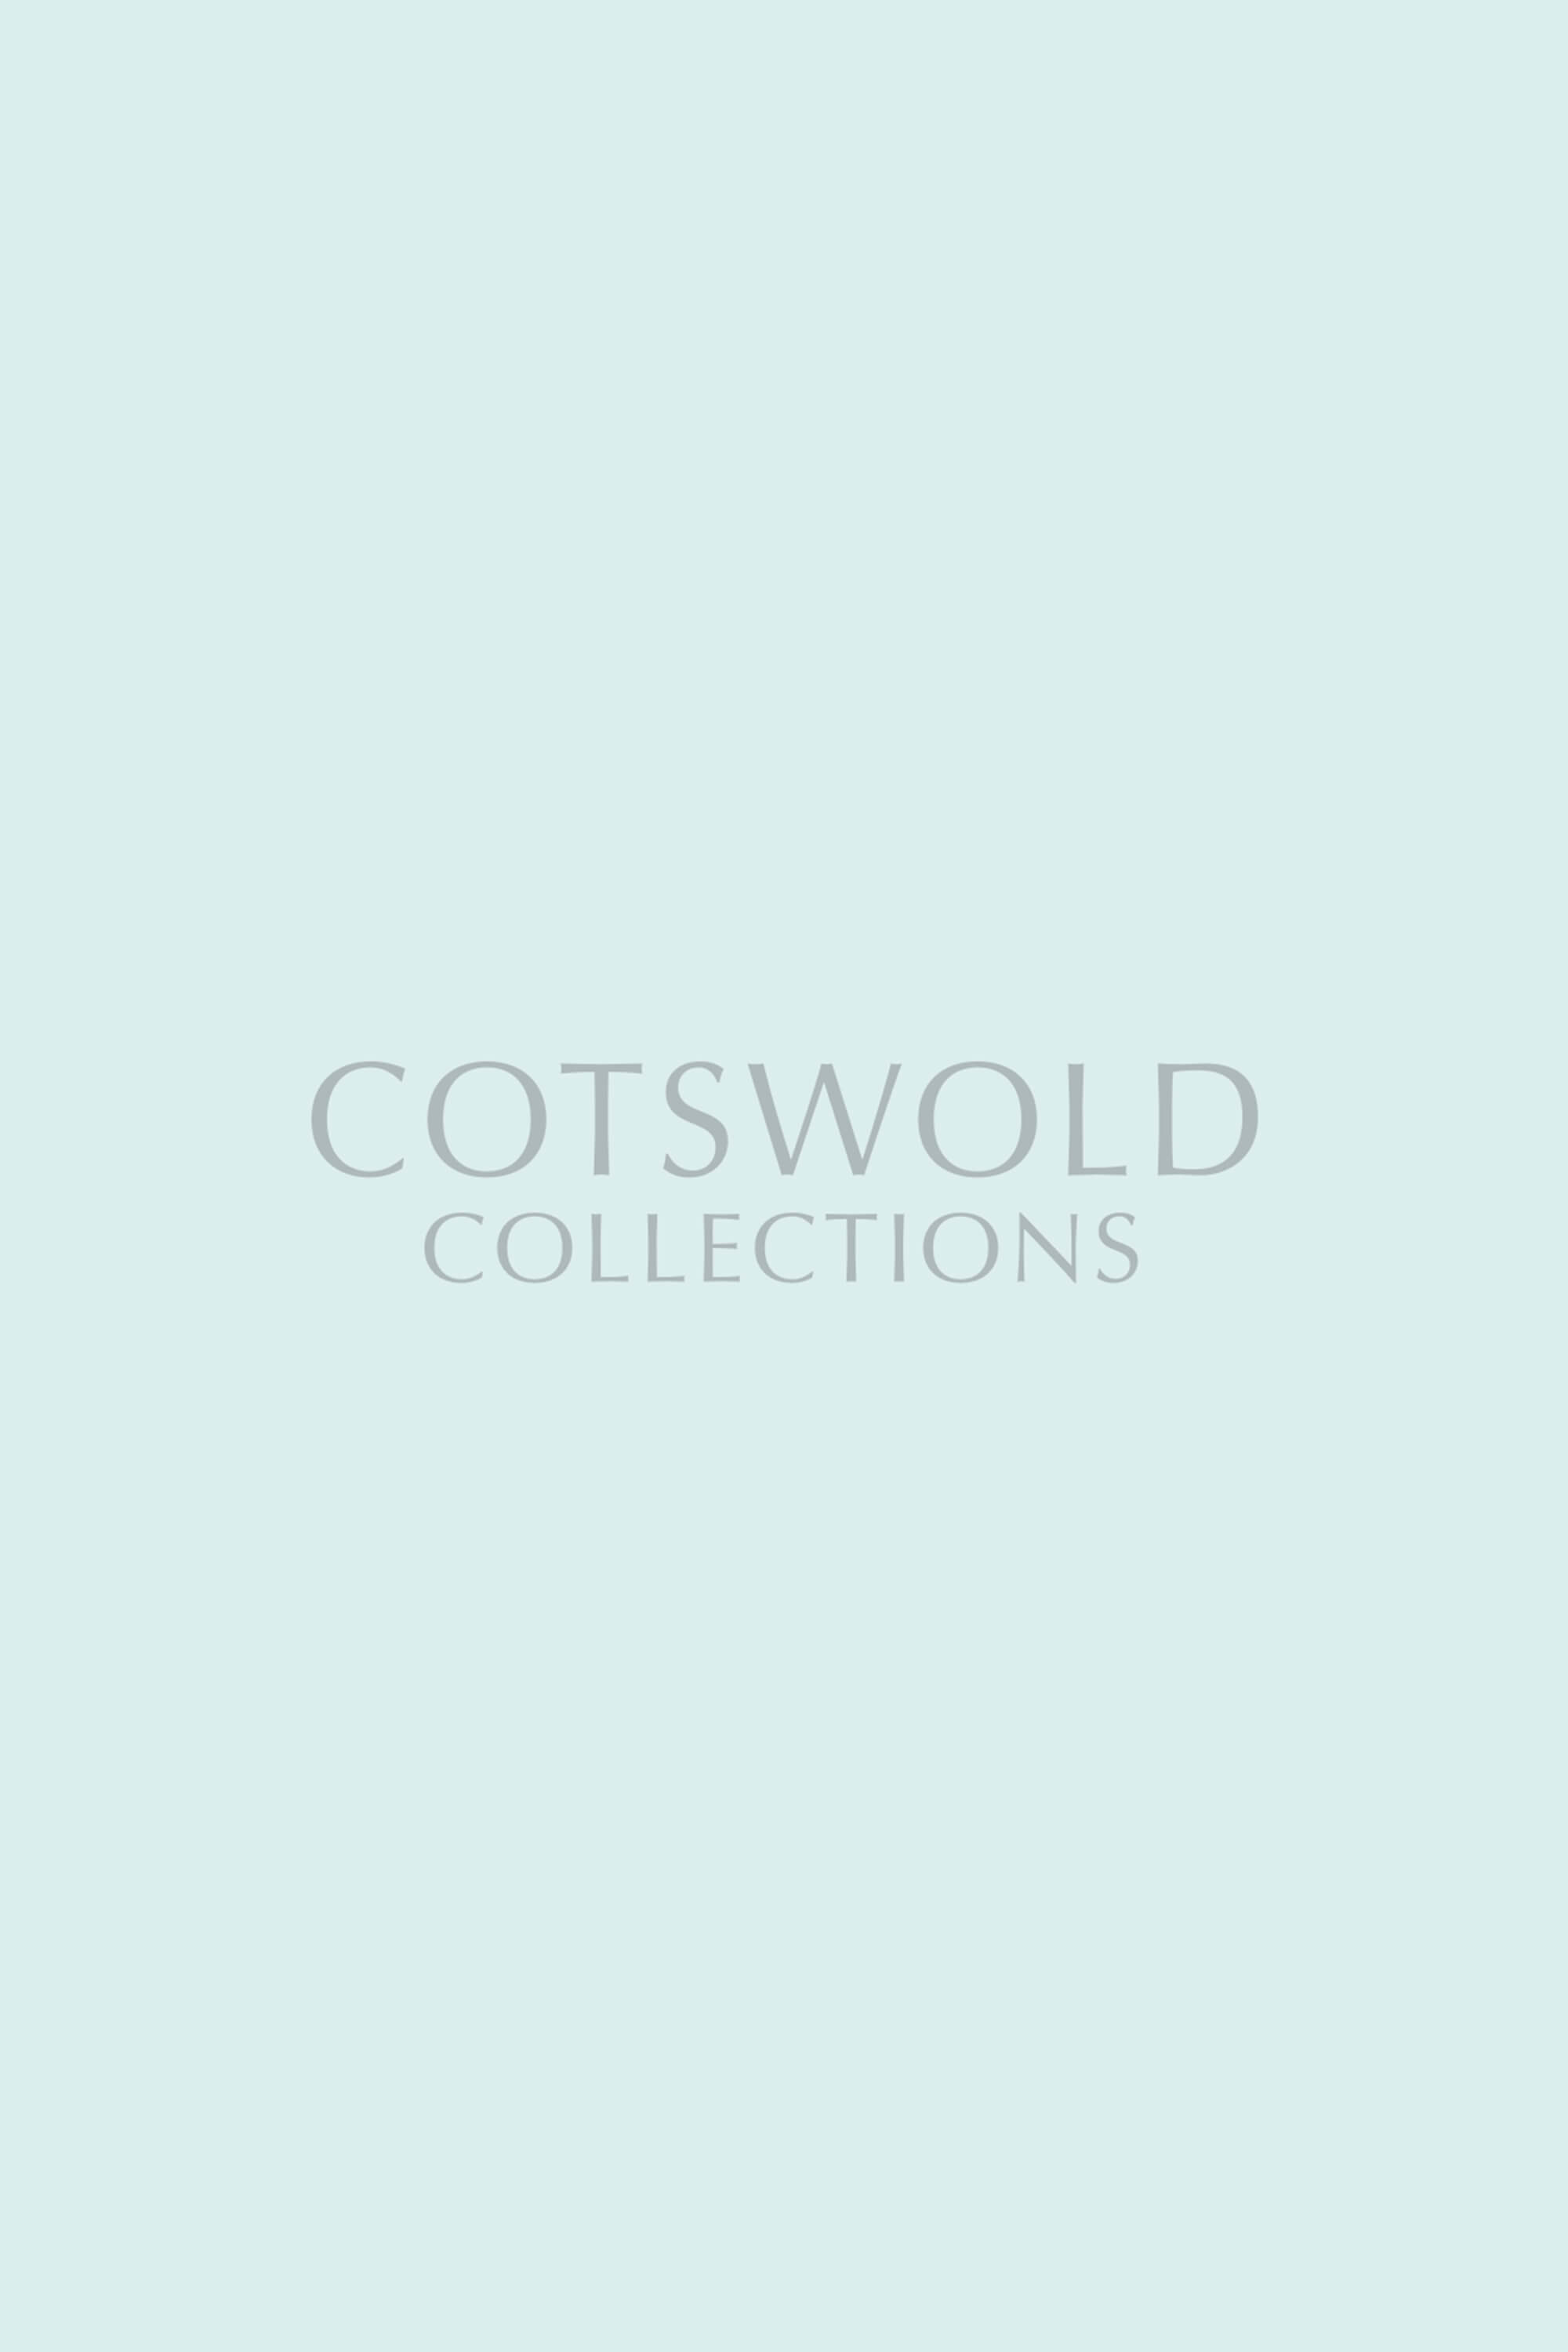 Cotswold lavender herbal tea bags GH925